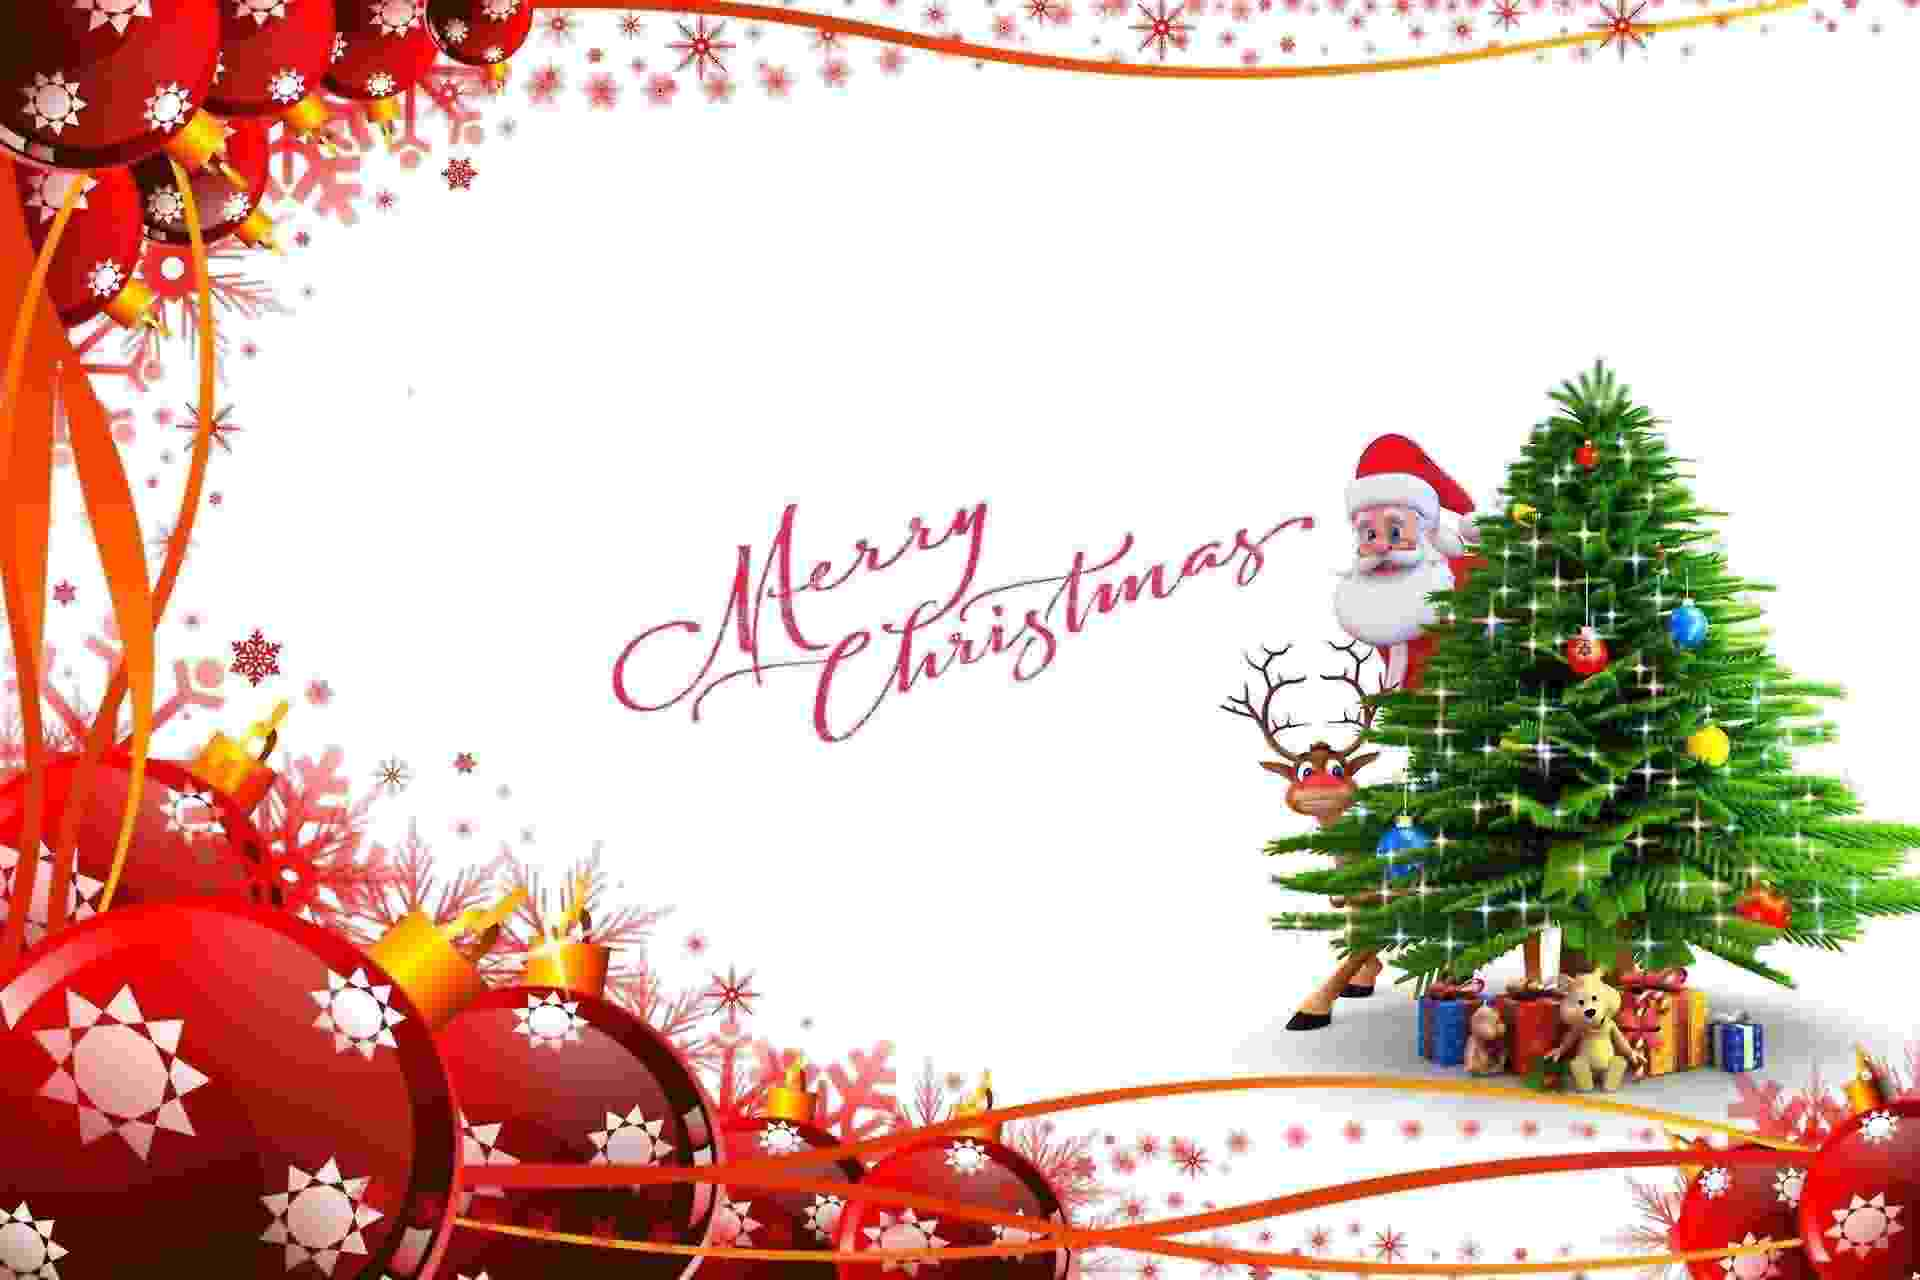 Best Happy New Year 2019 Wallpapers, christmas wishes to friends, christmas wishes for friends, christmas message for family christmas wishes images, christmas and new year greetings,